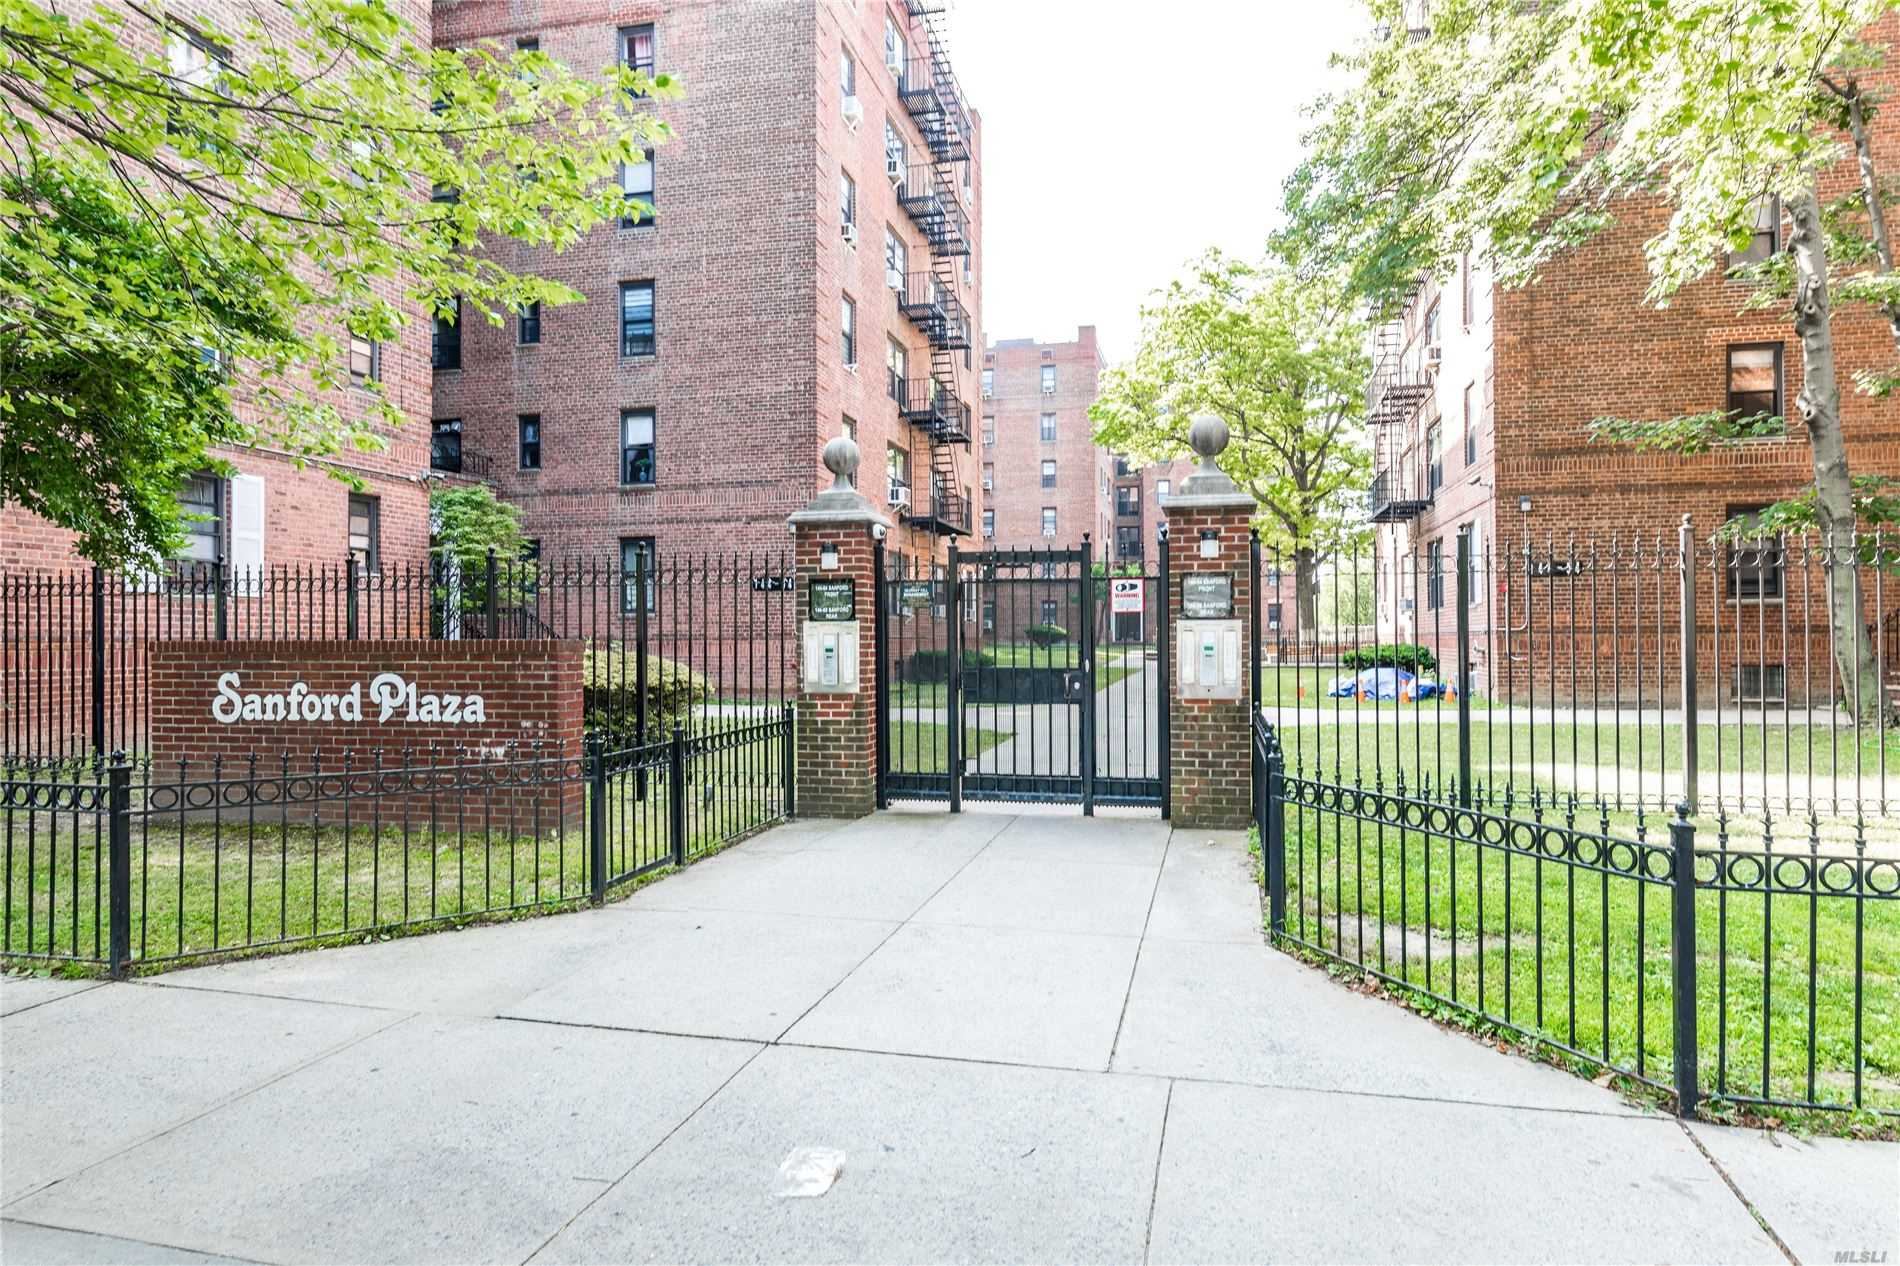 144-60 Sanford Ave 11355 - One of Flushing Homes for Sale